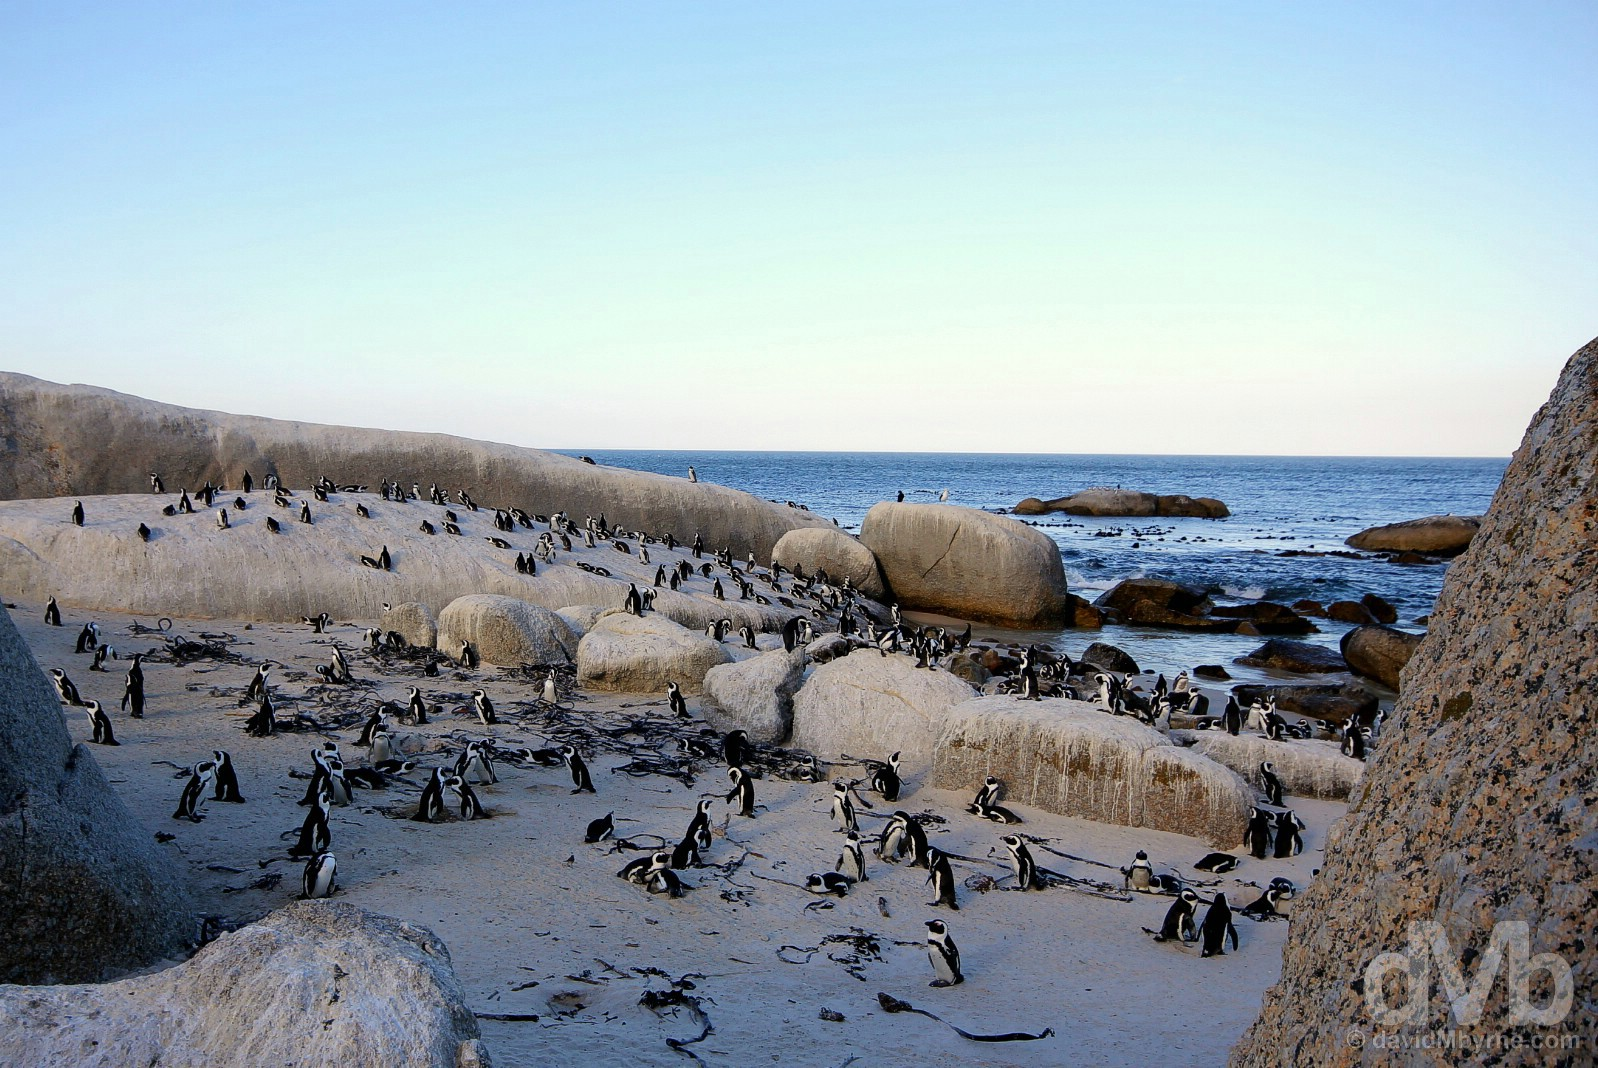 An African Penguin colony on Foxy Beach on the shores of False Bay, Cape Peninsula, Western Cape, South Africa. February 17, 2017.